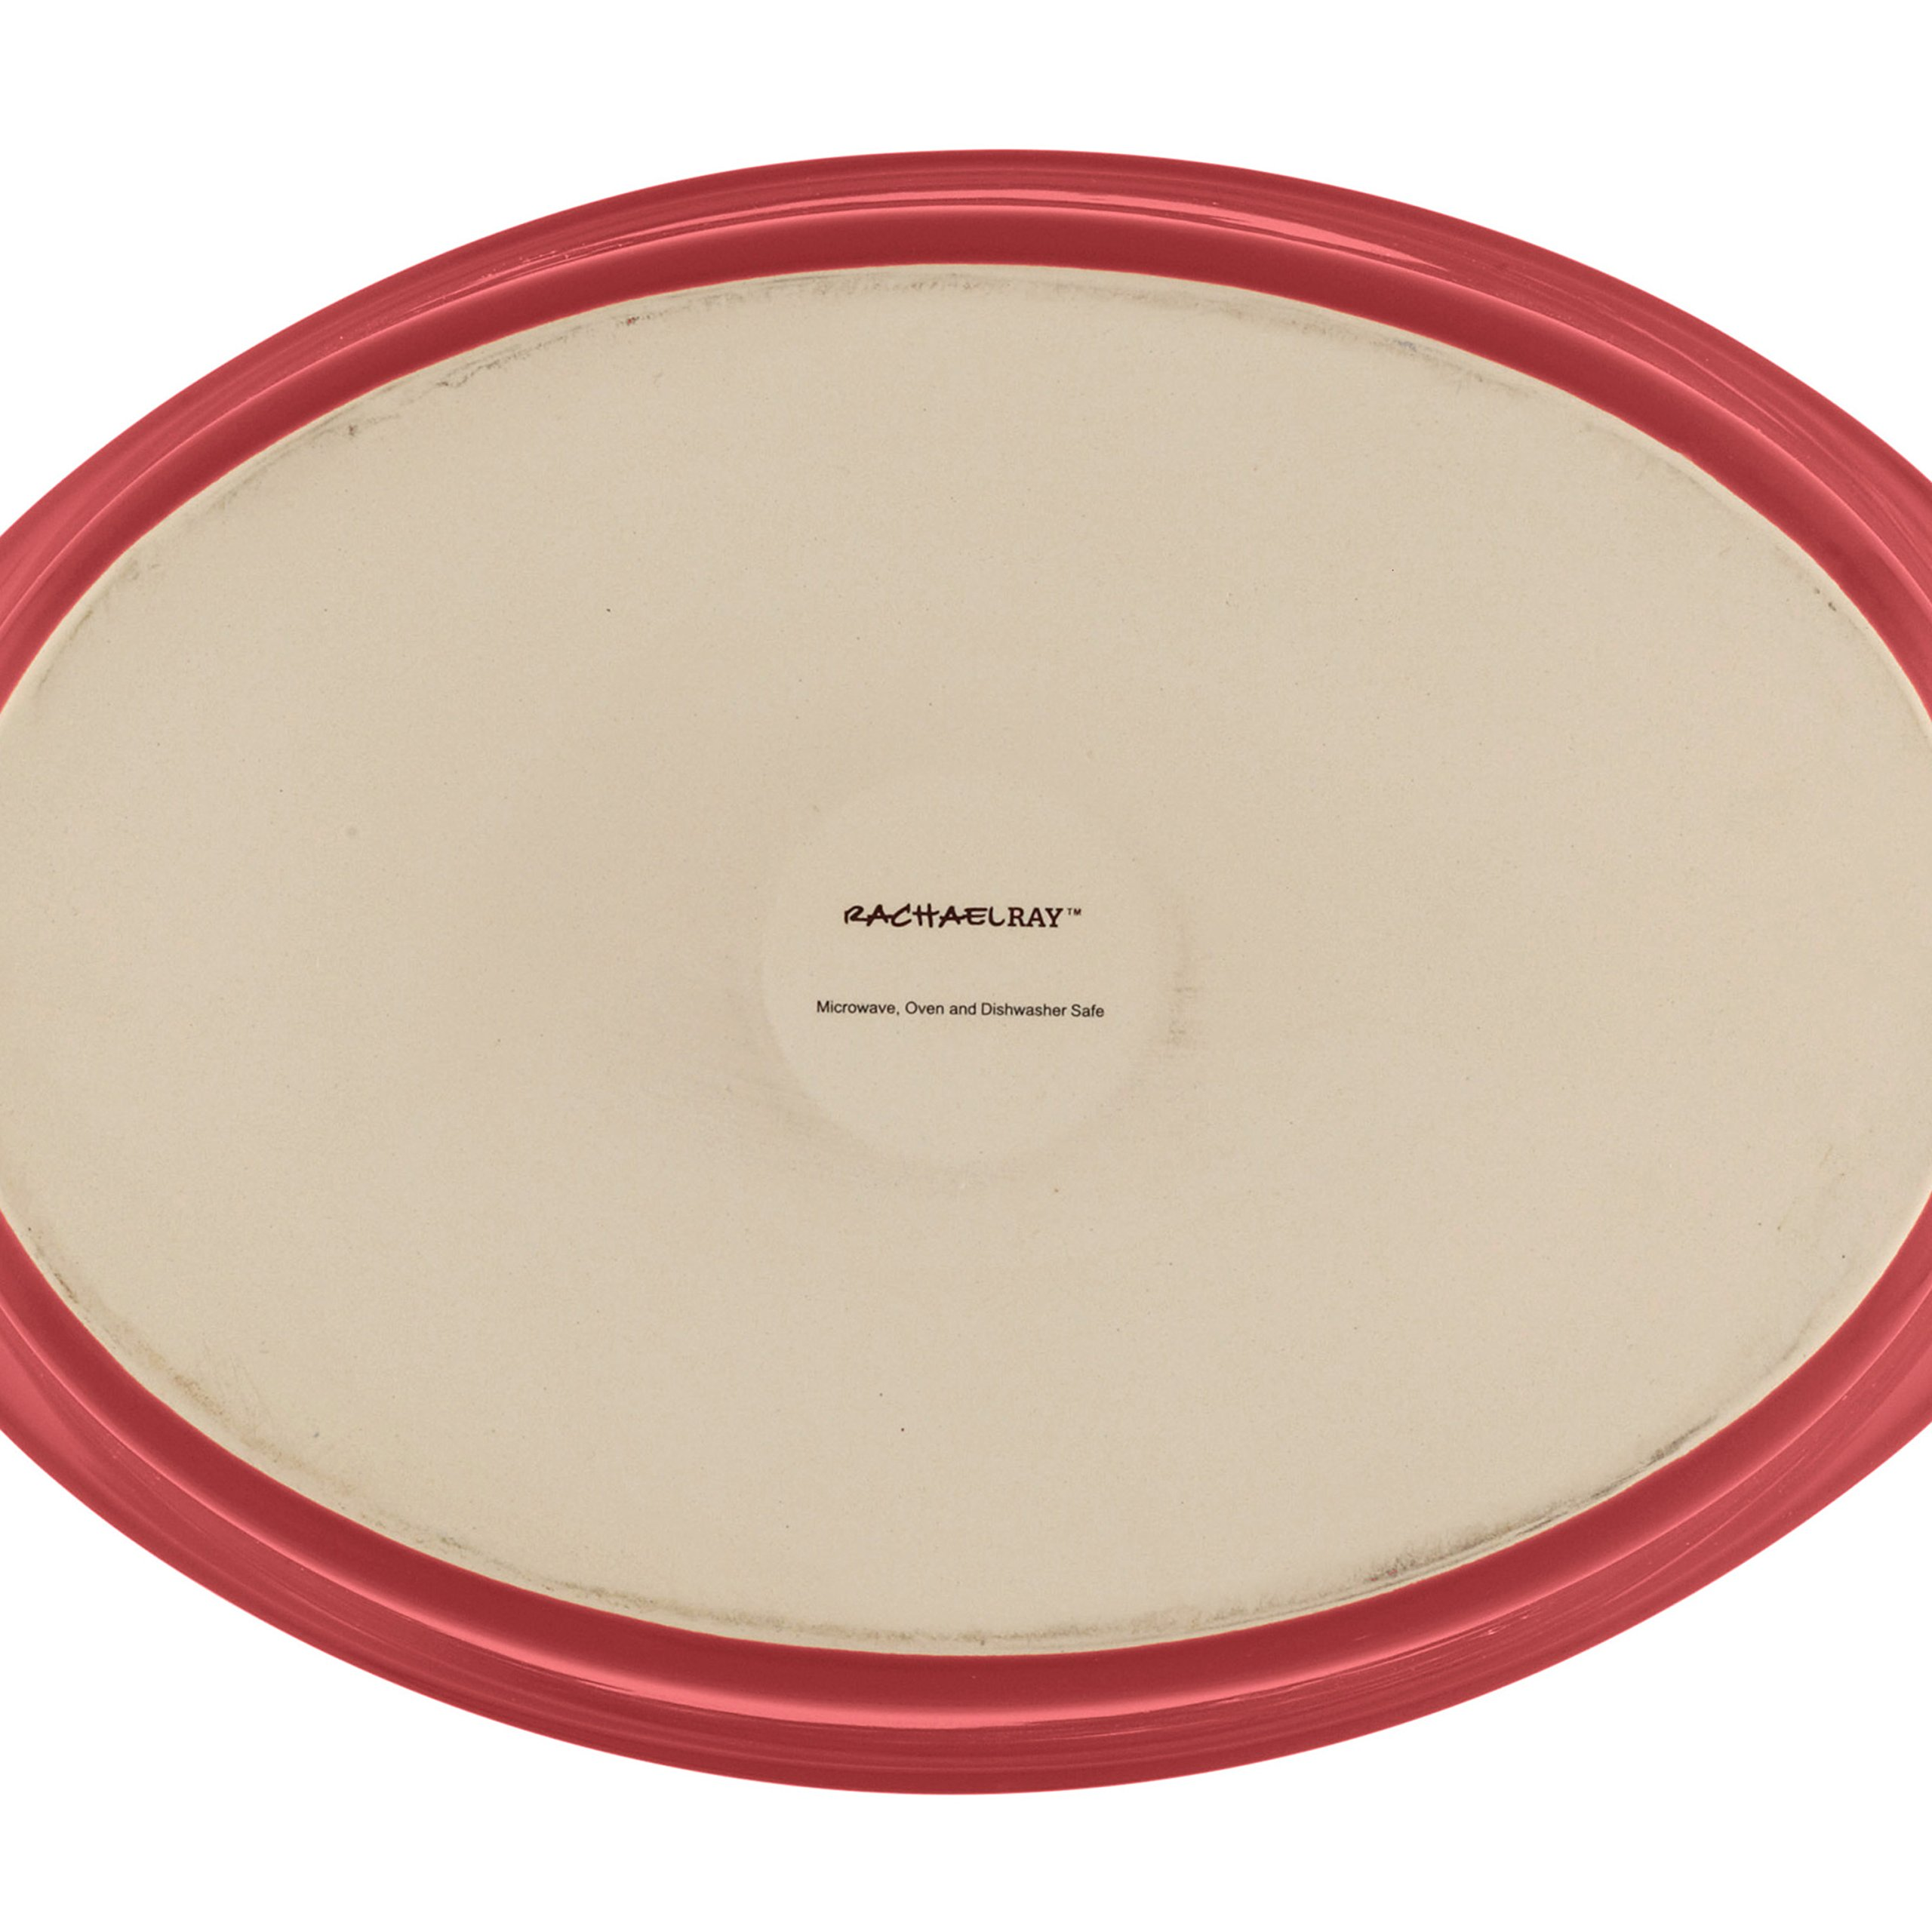 Rachael Ray Stoneware 1-1/4-Quart and 2-1/4-Quart Oval Bubble & Brown Baker Set, Red by Rachael Ray (Image #6)